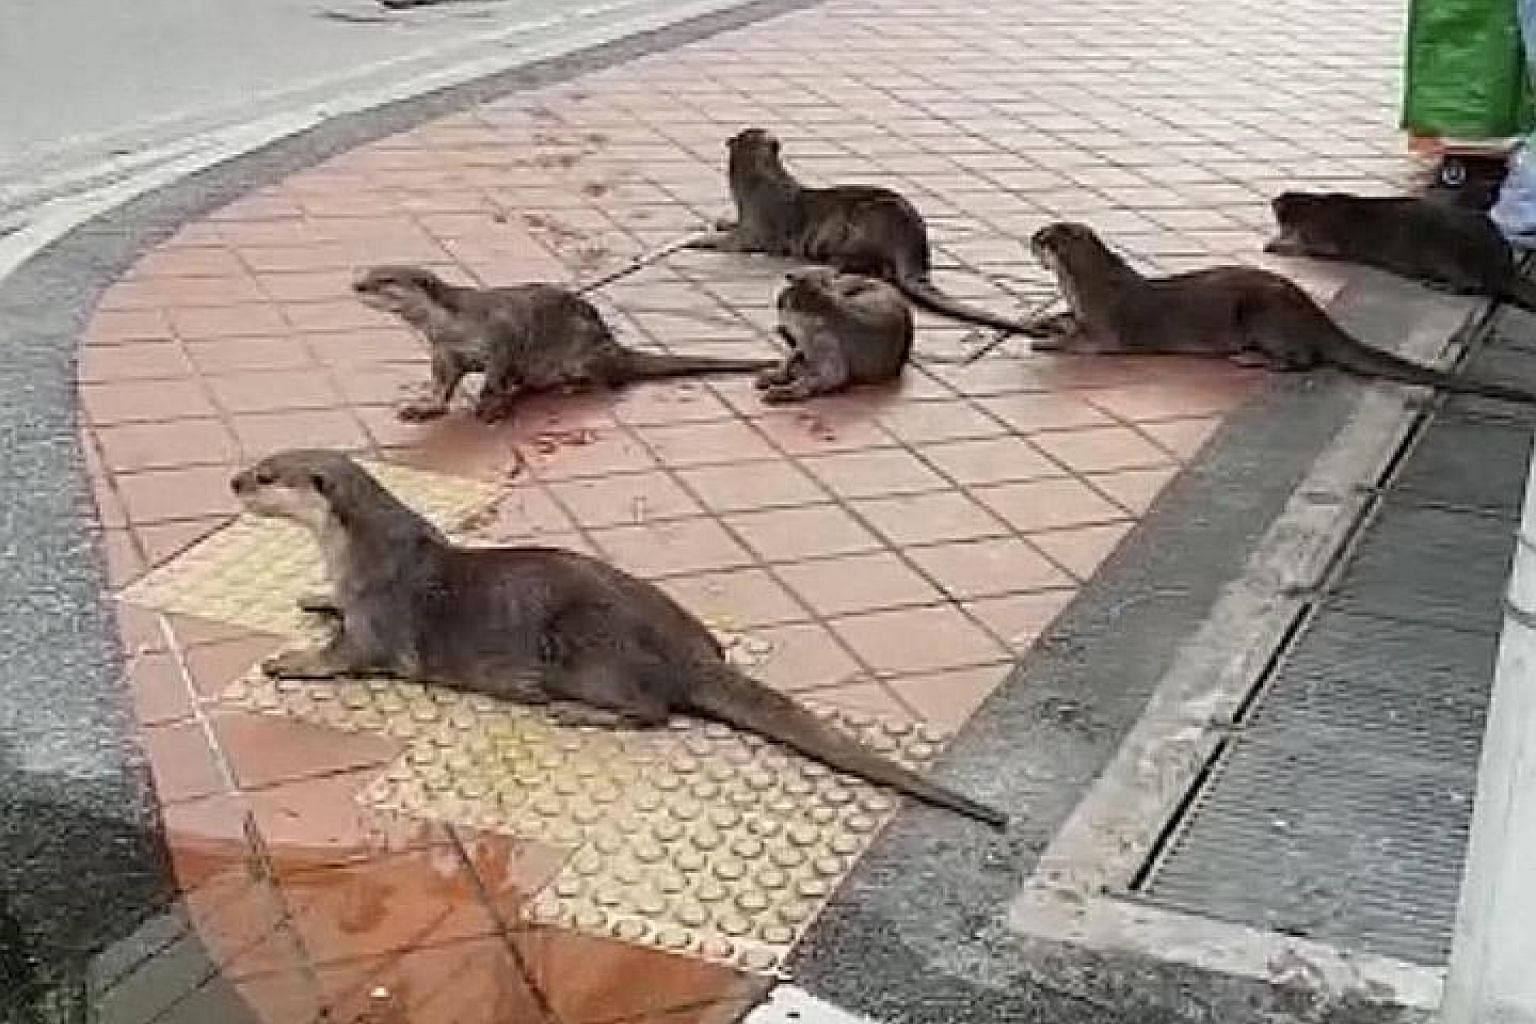 A screengrab from a video of a family of smooth-coated otters frolicking in the empty streets outside Mustafa Centre, a shopping mall in the Little India neighbourhood, on Friday. PHOTO: CONTRIBUTOR TO OTTERWATCH